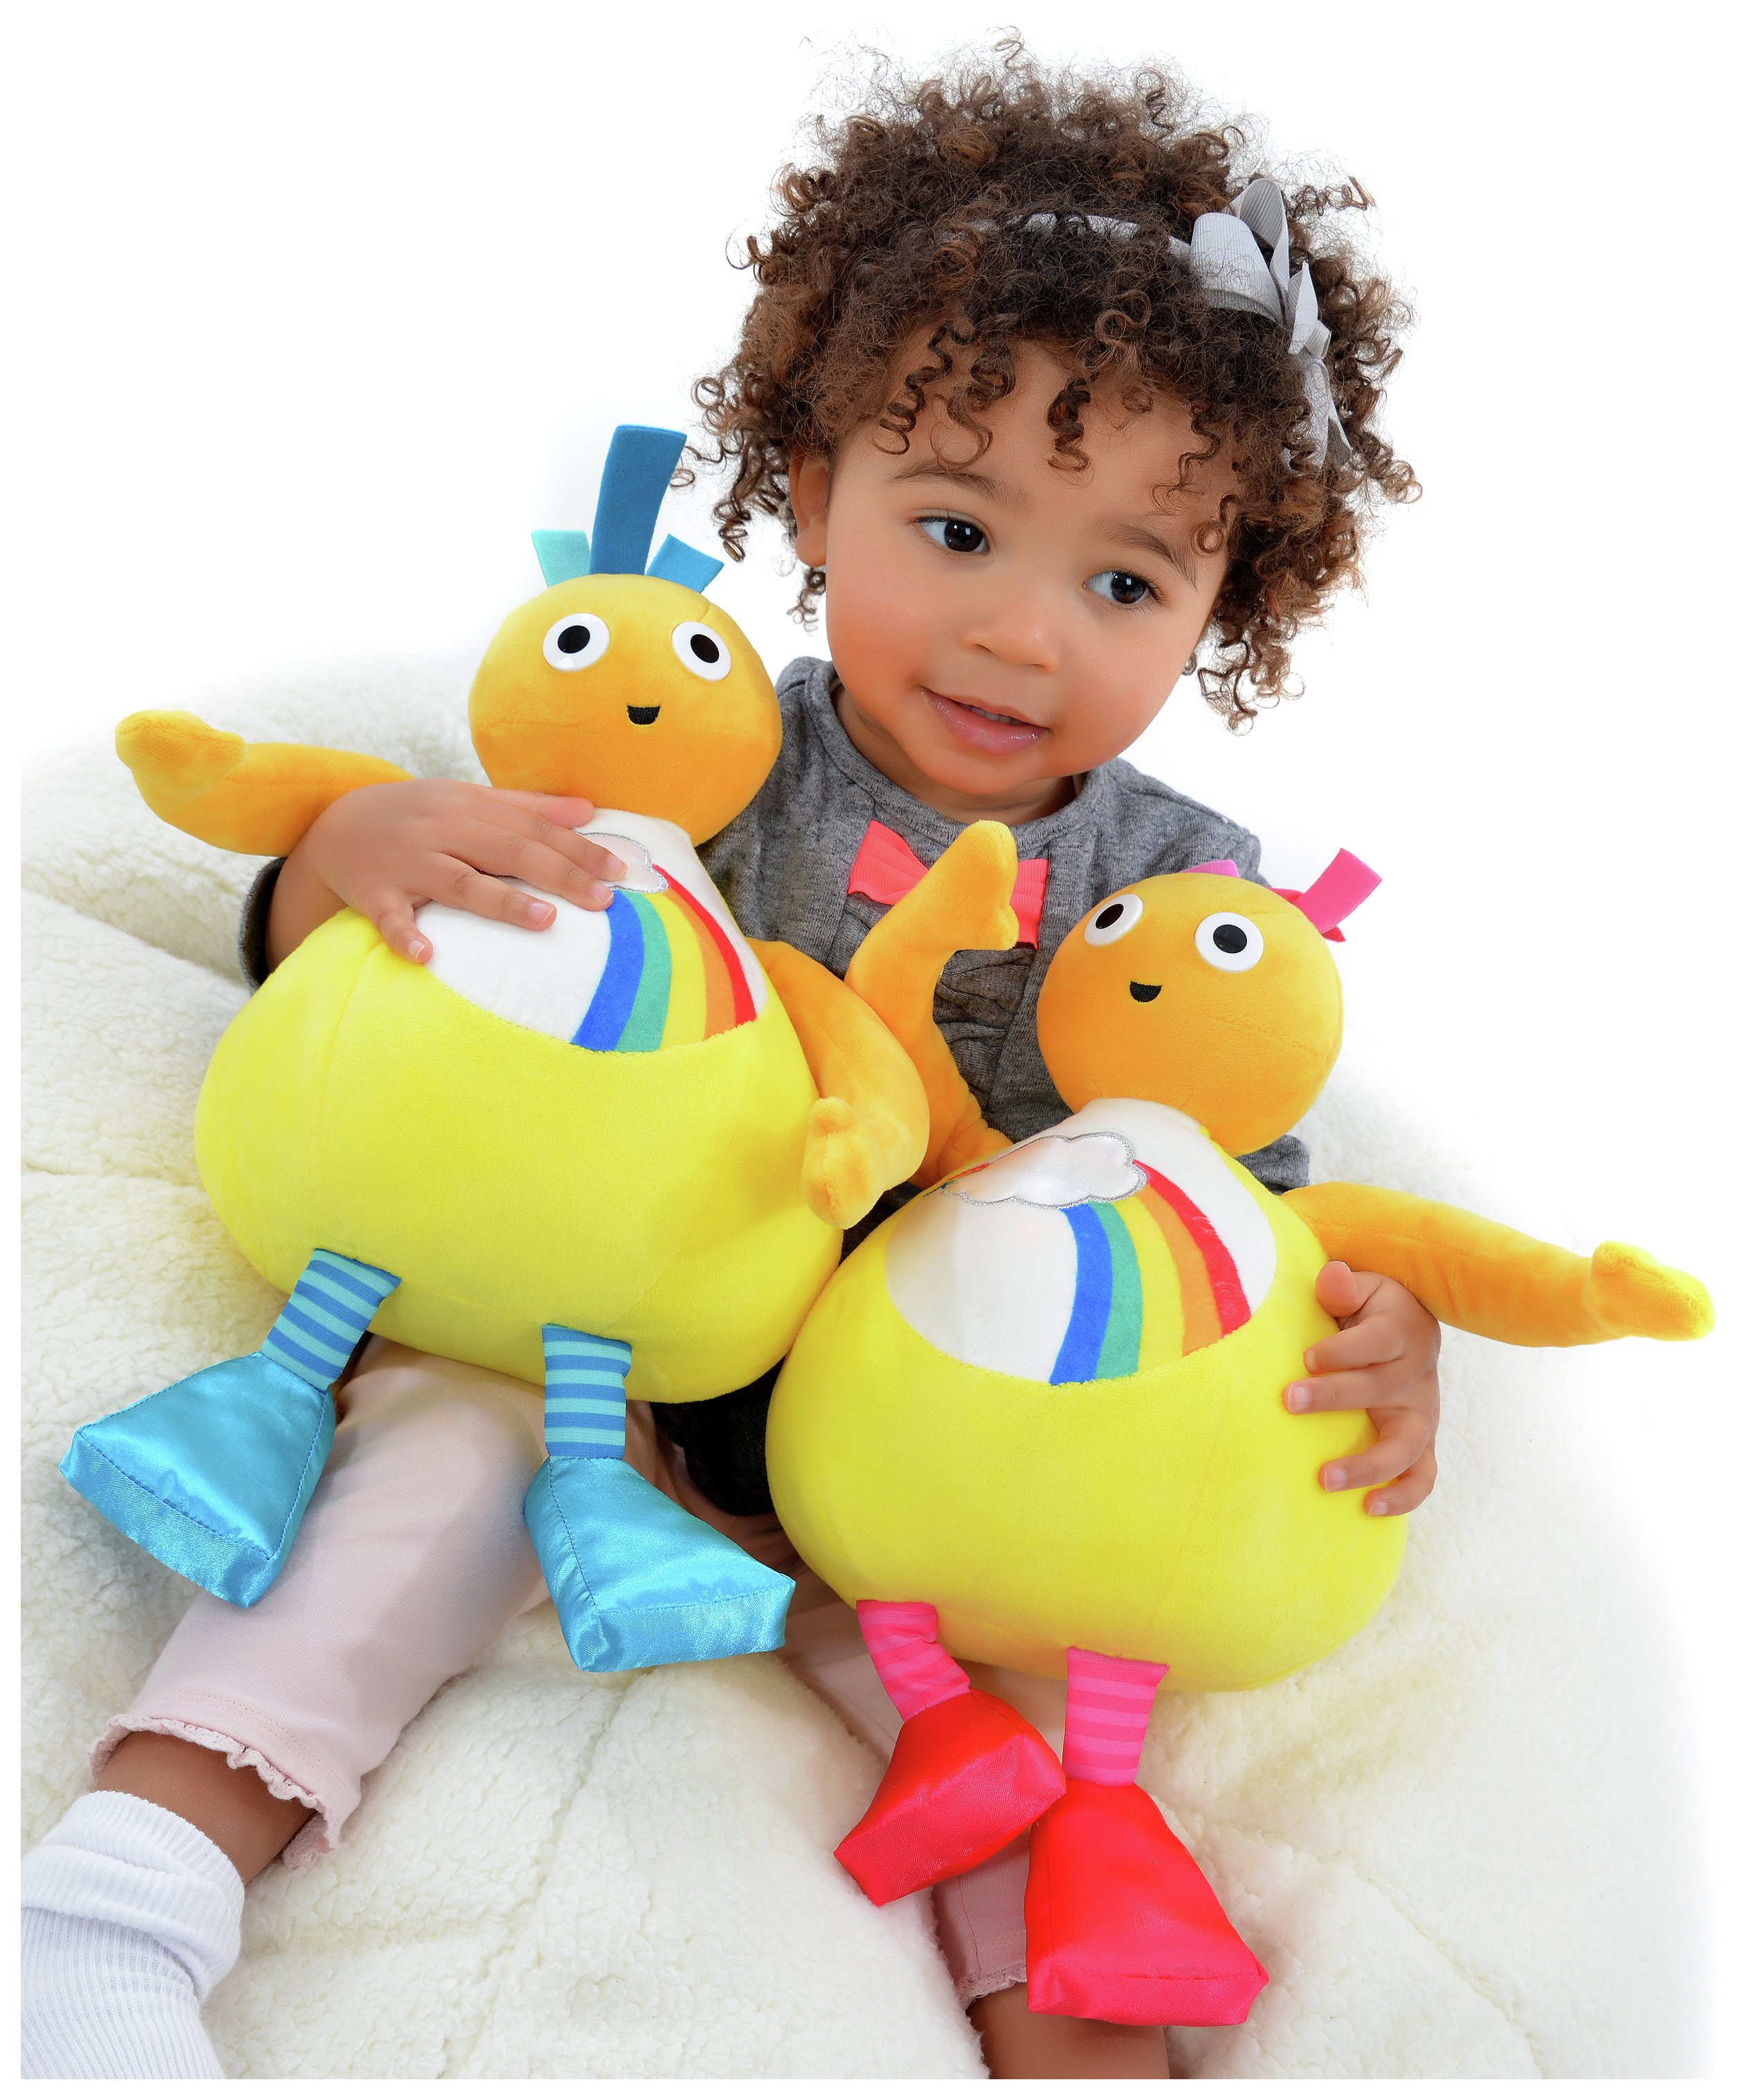 Squishy Mushy Argos : Twirlywoos Interactive Chickedy & Chick Soft Toy Octer ?24.99